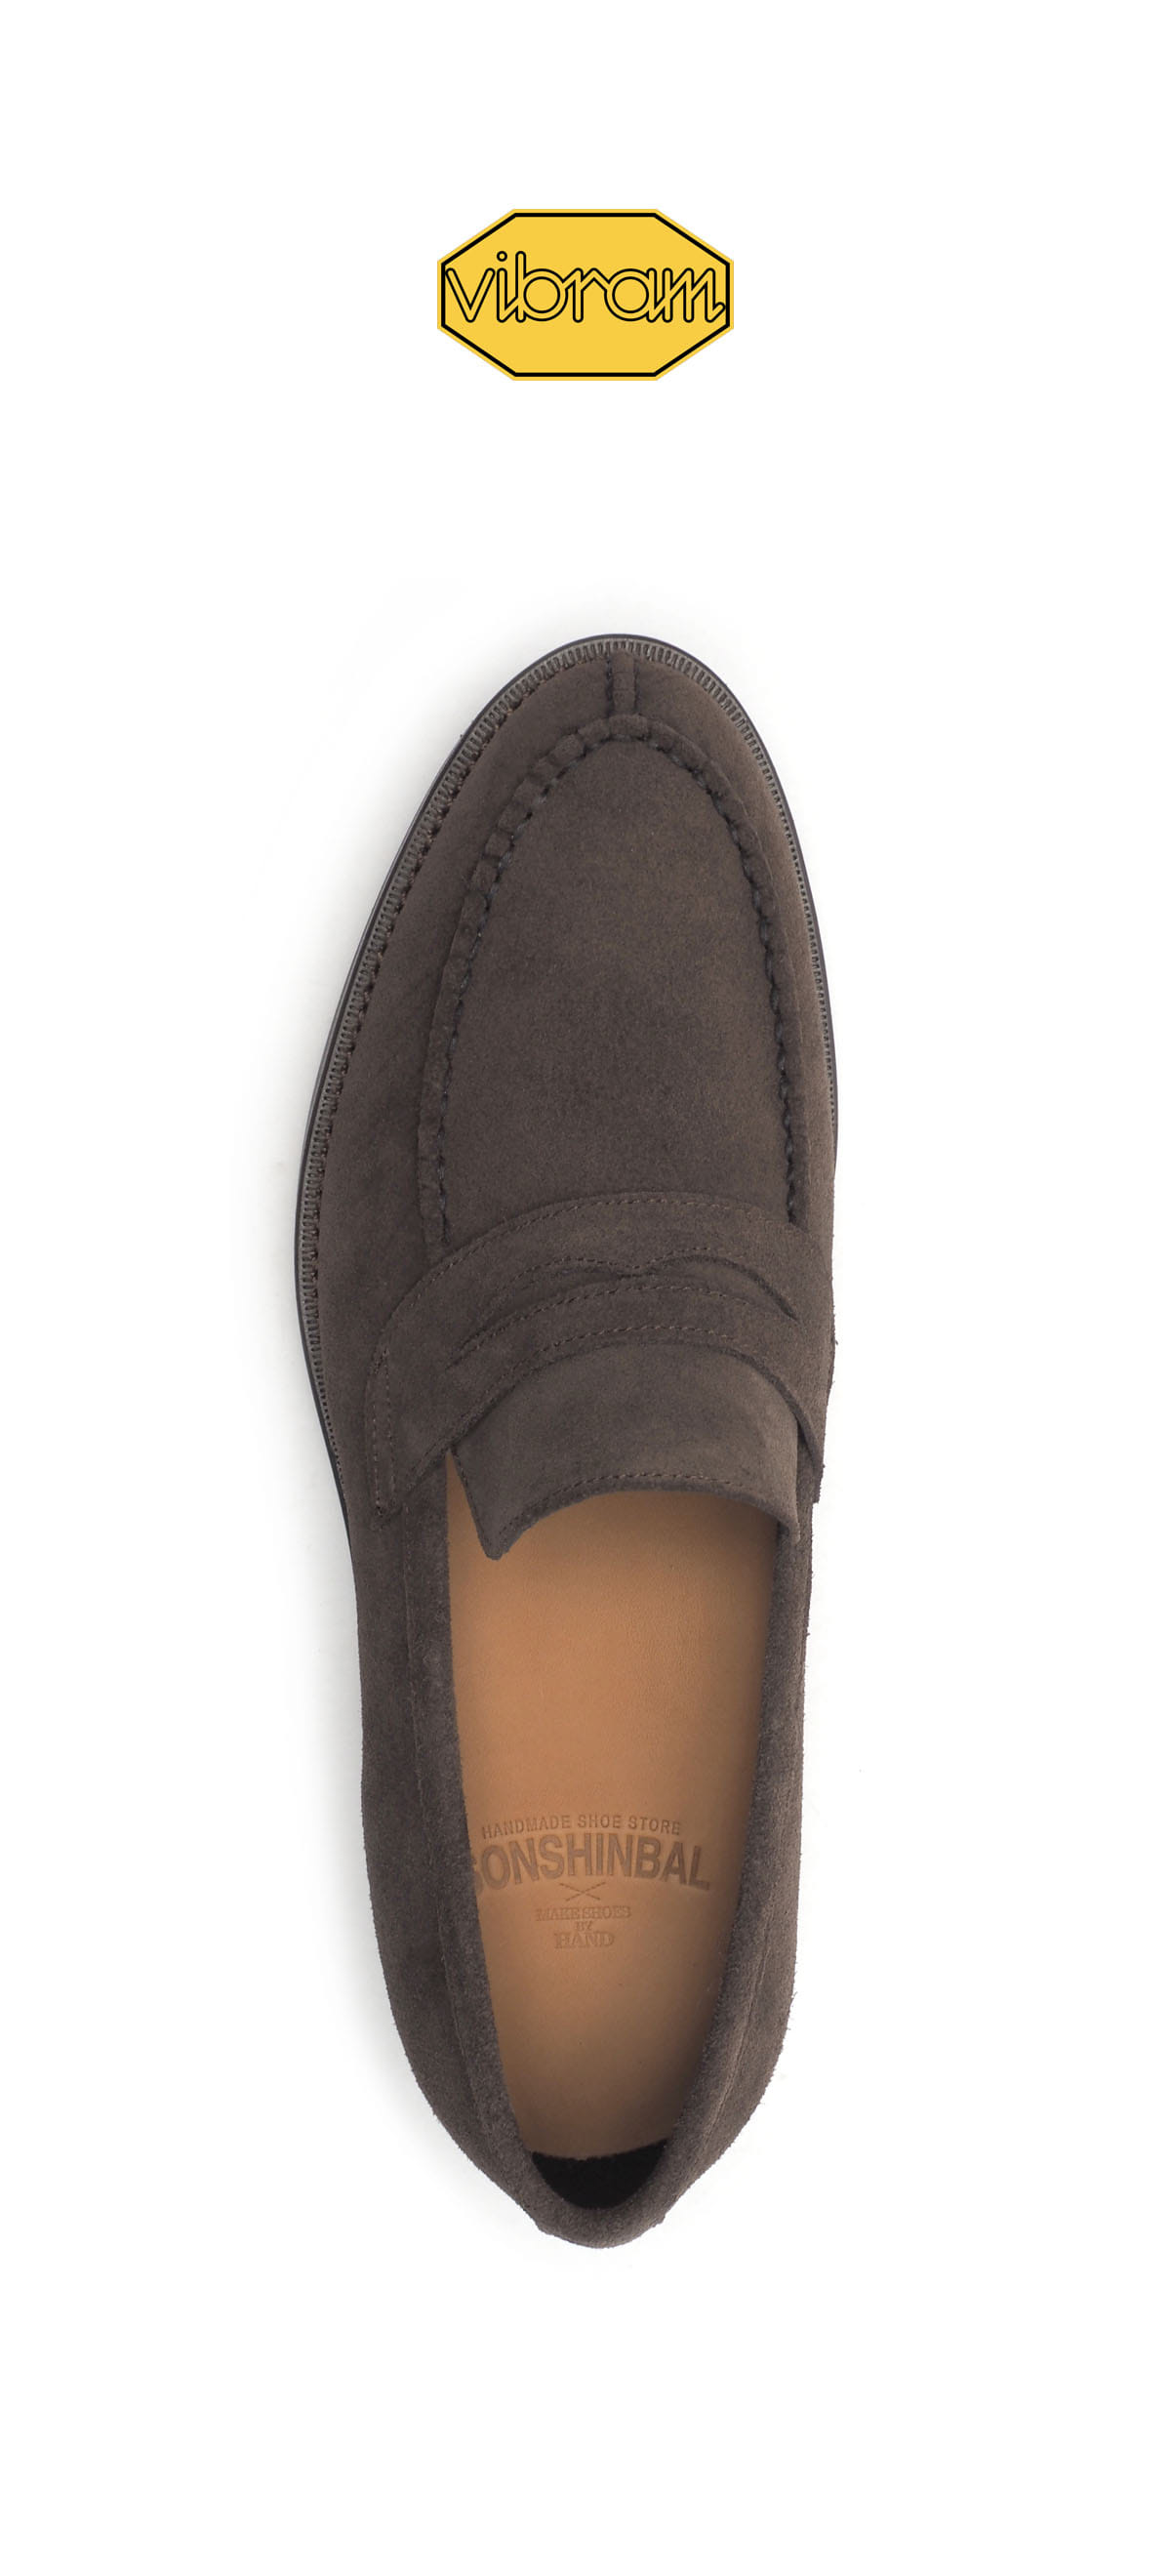 Penny Loafer 2052-03 Deep Brown Suede